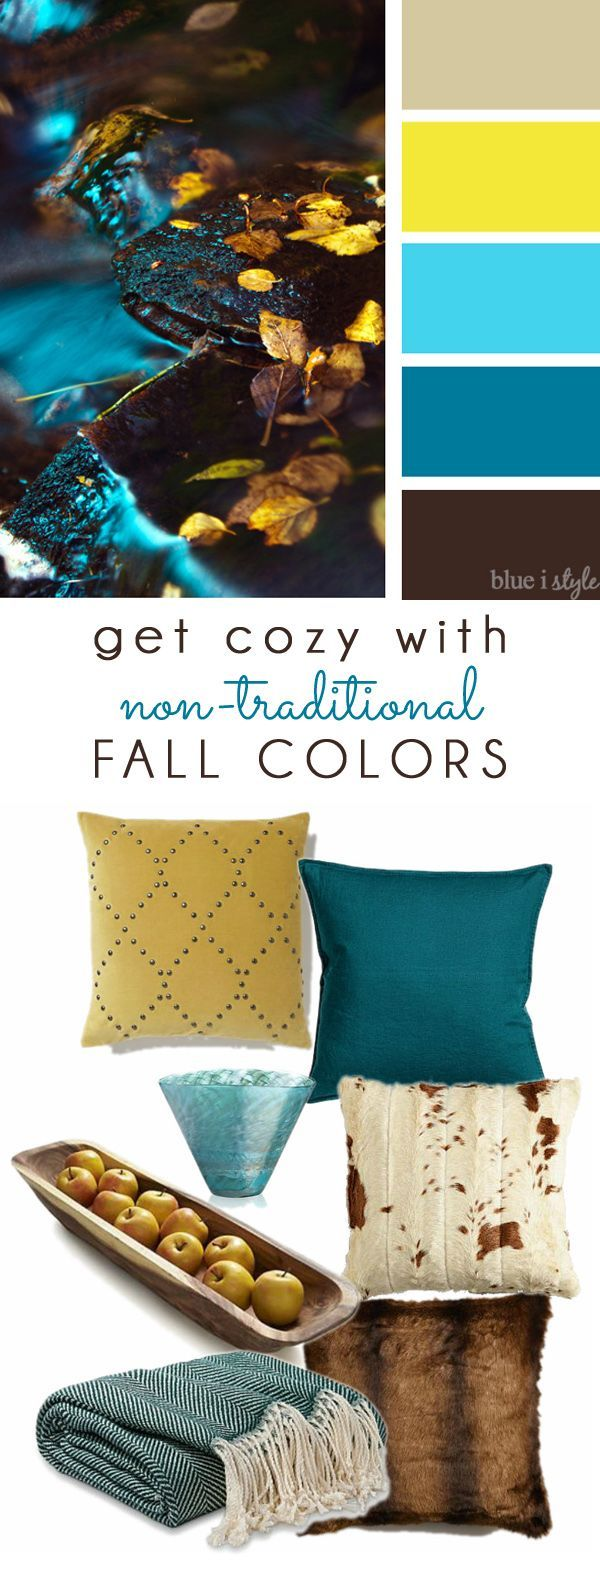 best 25+ teal yellow ideas on pinterest | teal yellow grey, yellow